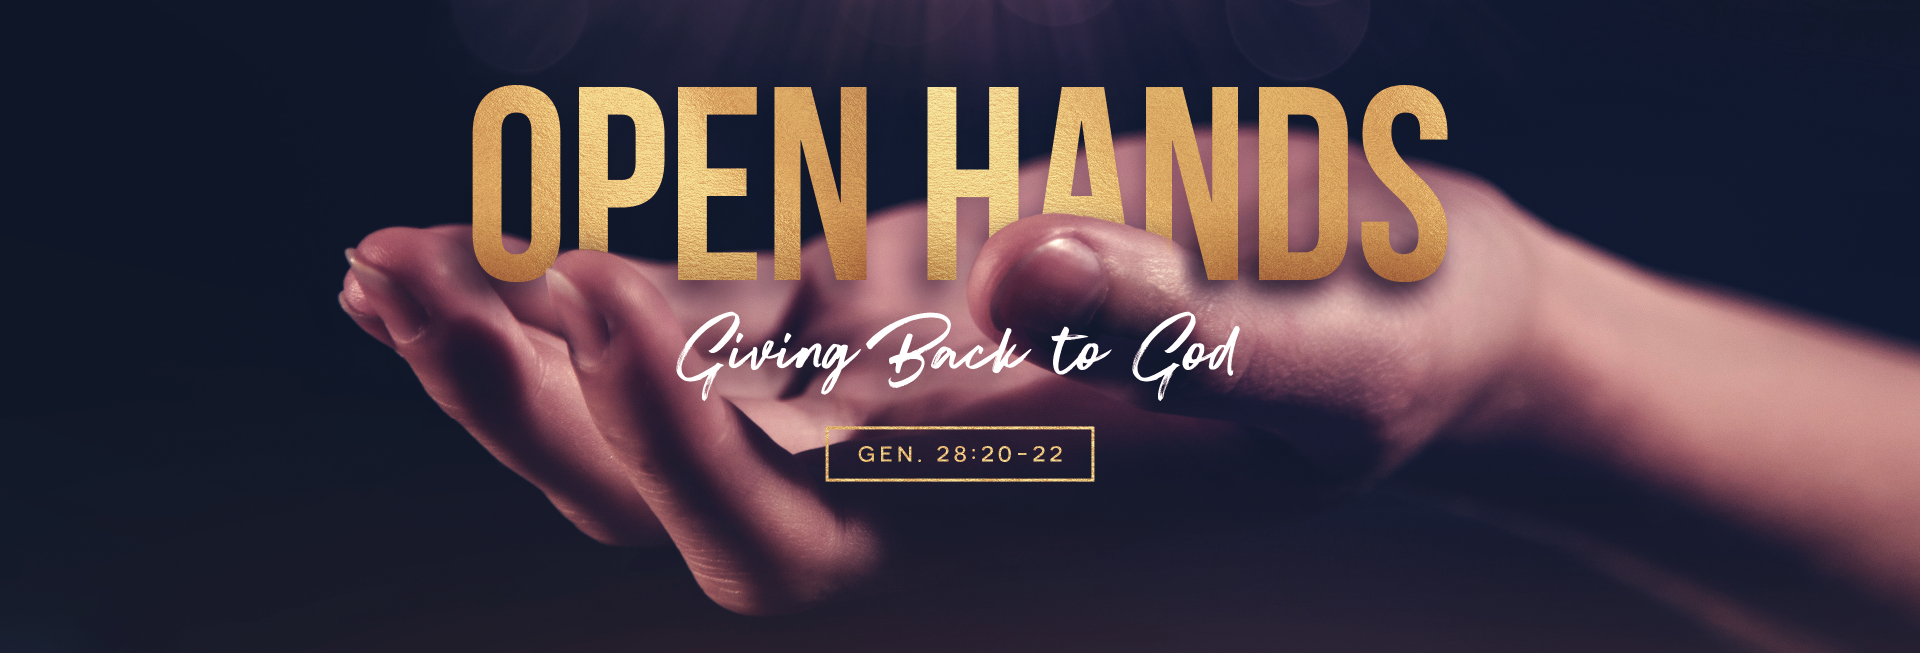 Open Hands Tithing Church Website Banner